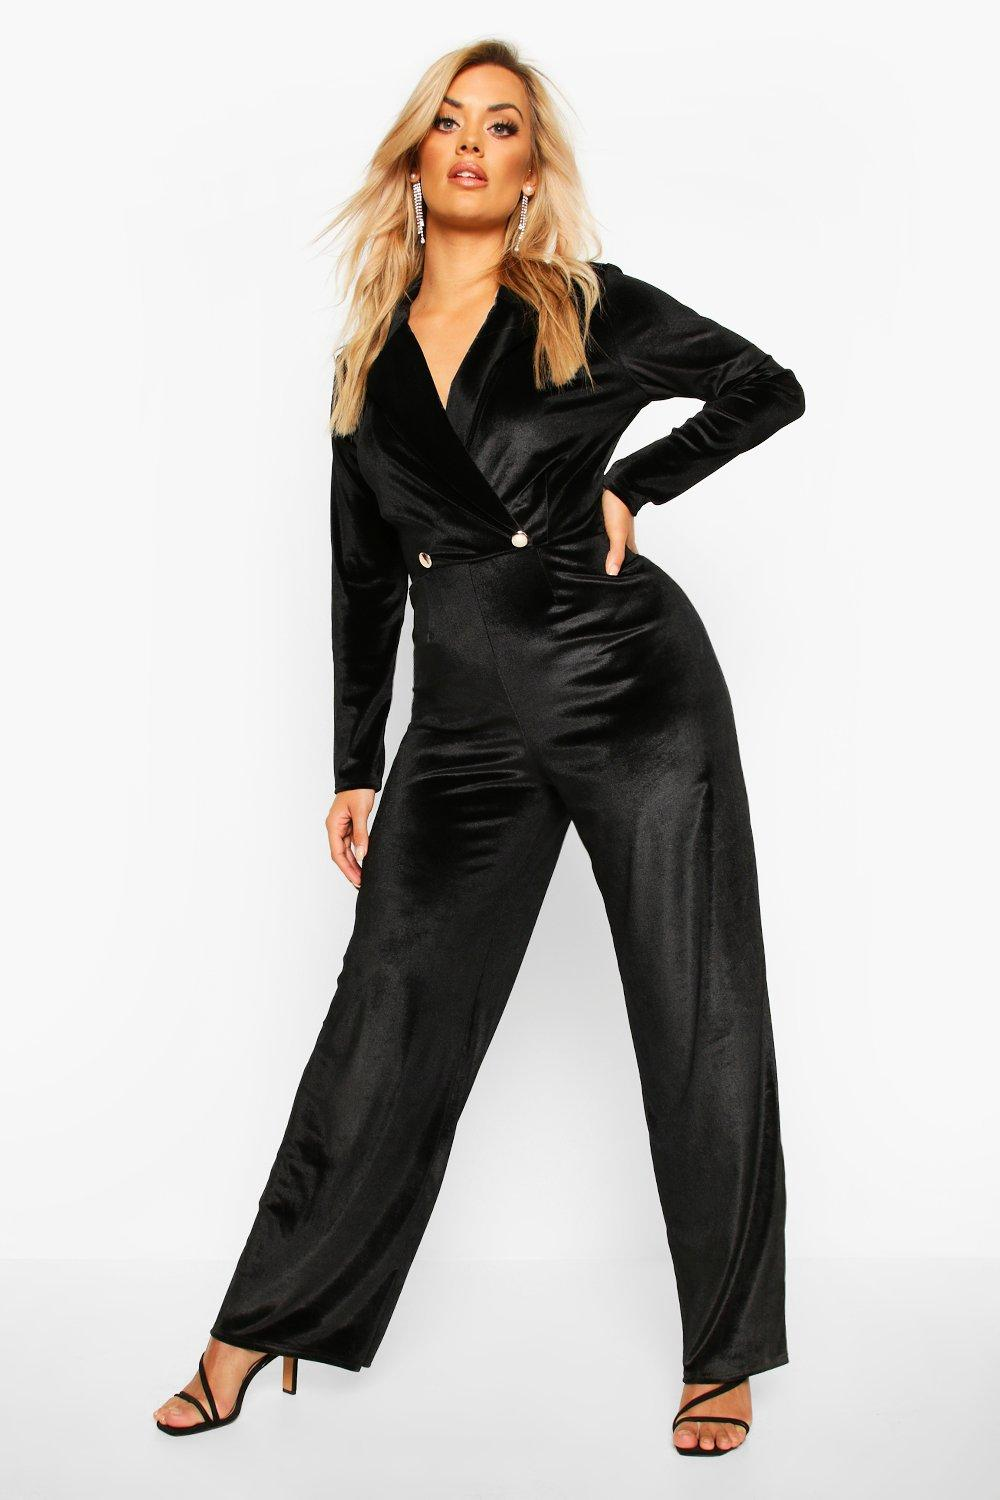 70s Jumpsuit | Disco Jumpsuits – Sequin, Striped, Gold, White, Black Womens Plus Velvet Wrap Front Wide Leg Jumpsuit - black - 16 $56.00 AT vintagedancer.com